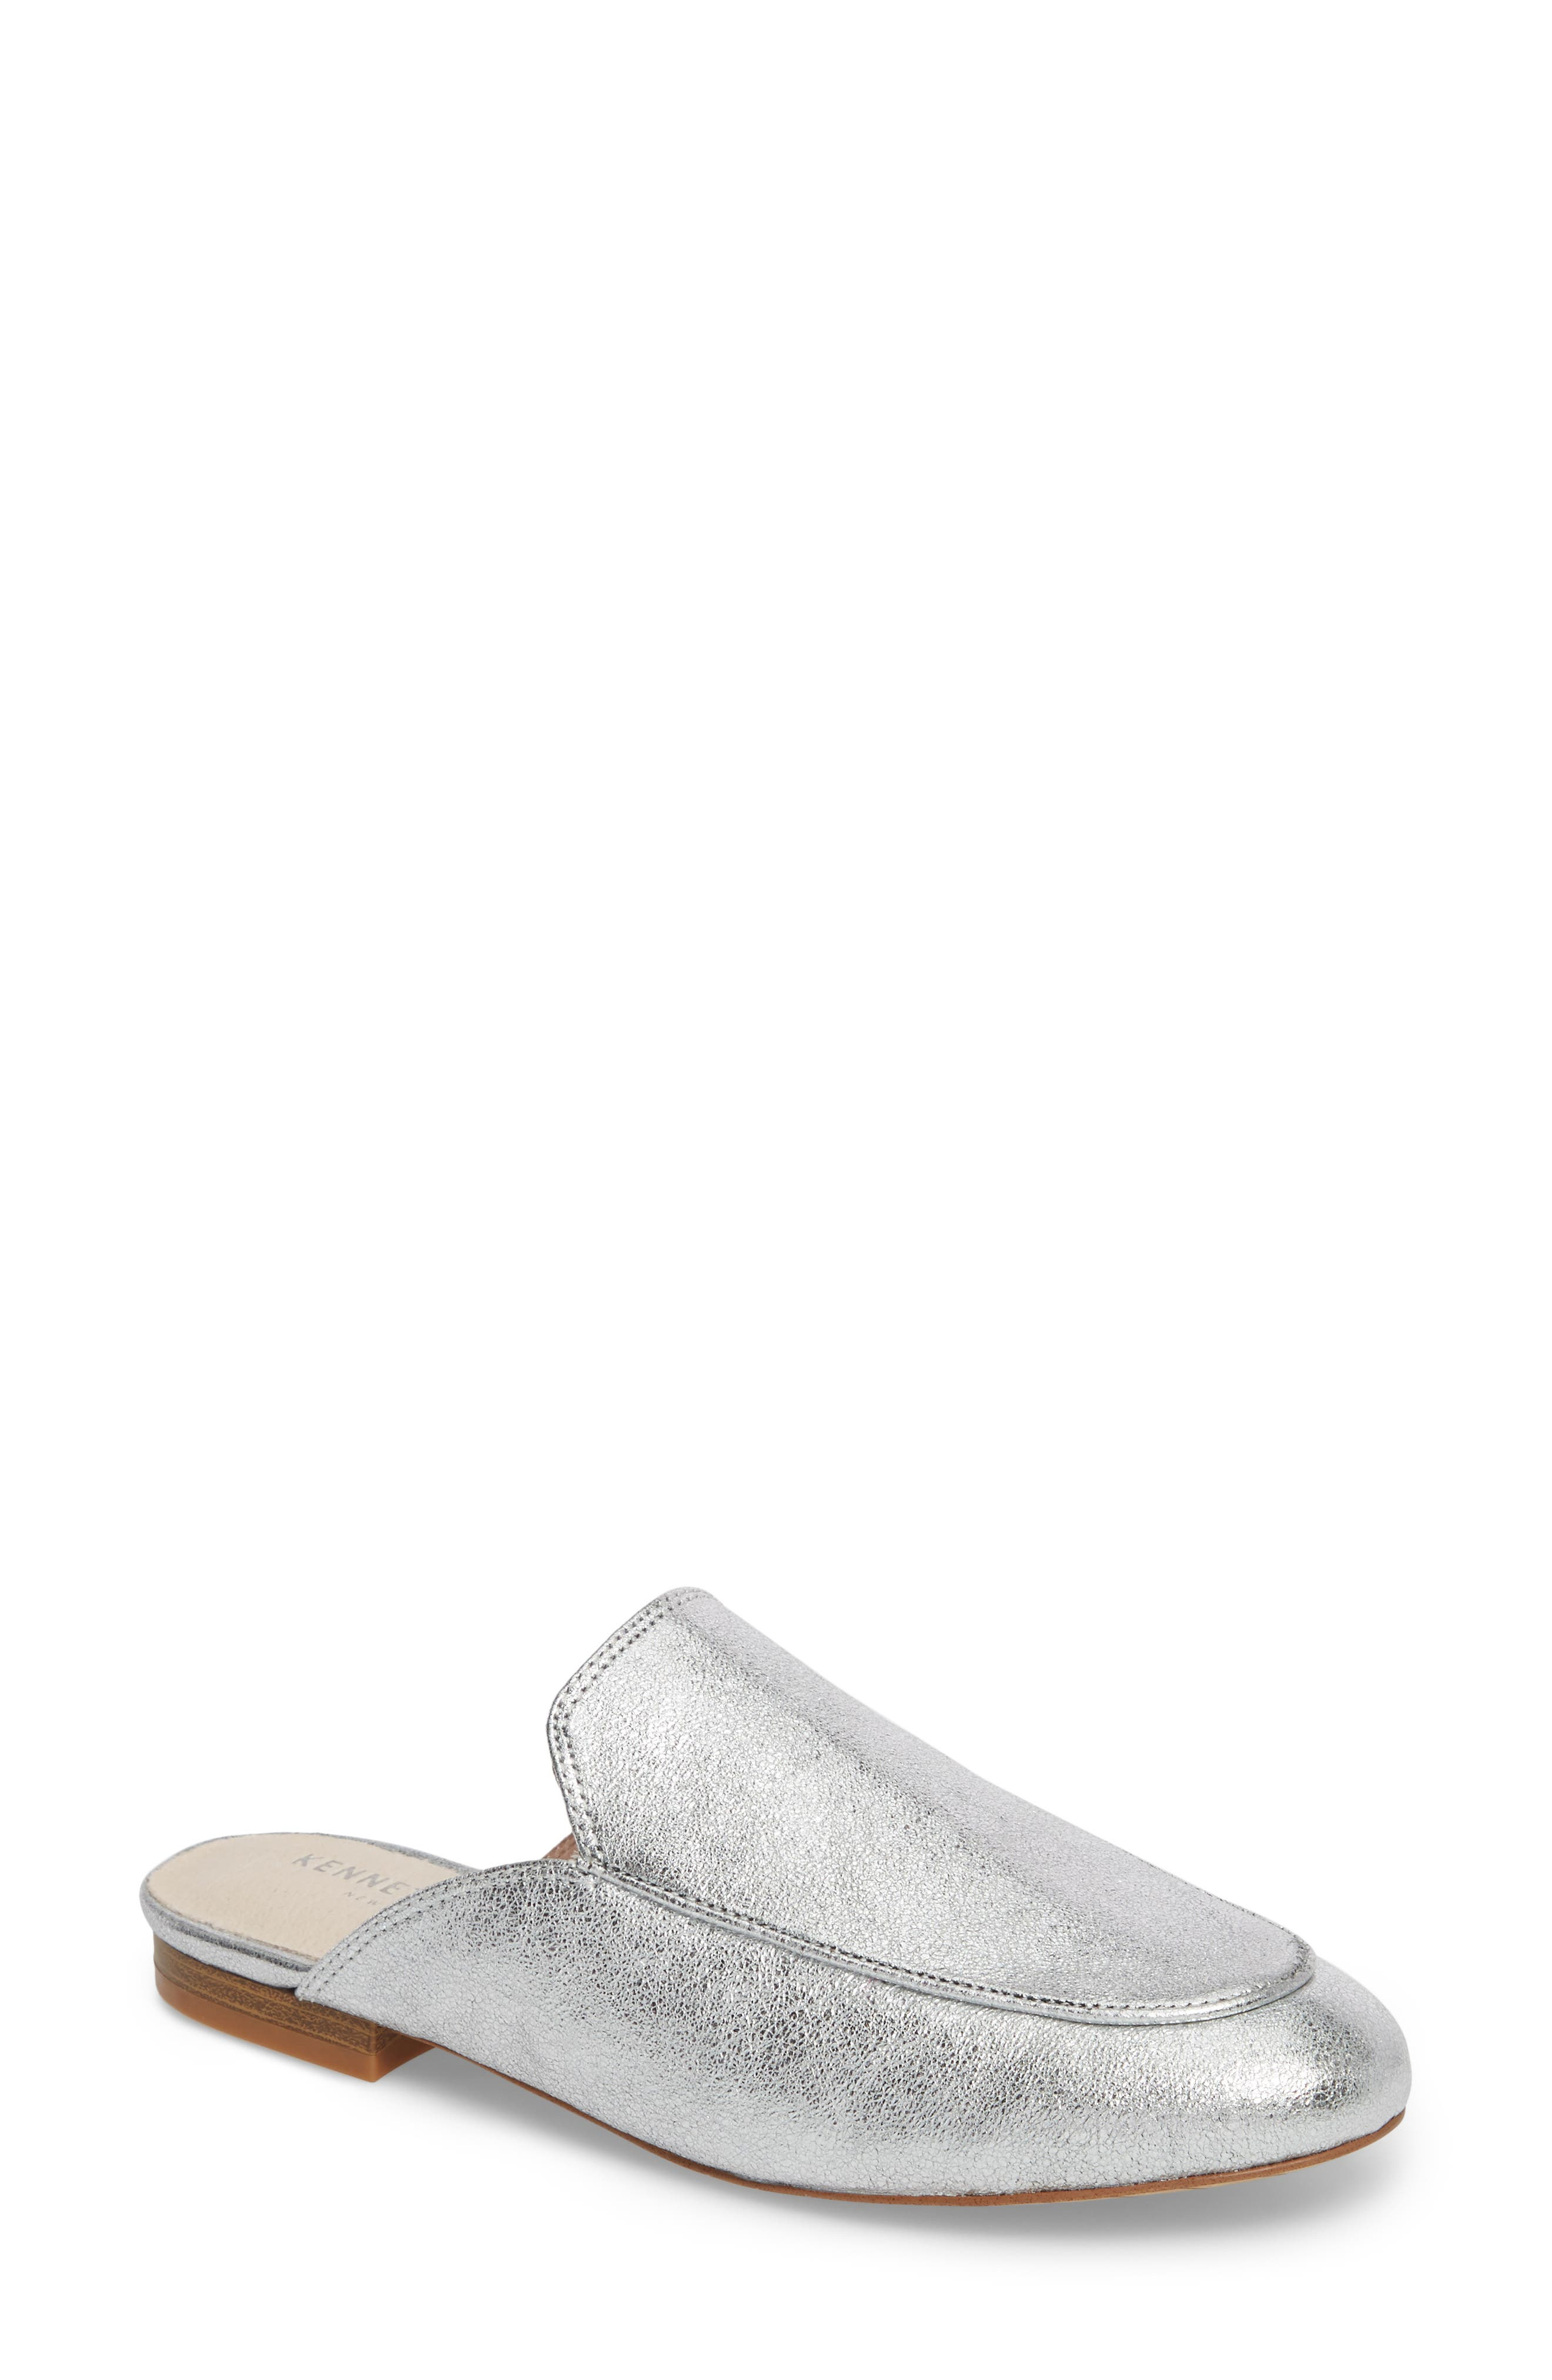 KENNETH COLE NEW YORK Wallice Appliqué Mule, Main, color, 040